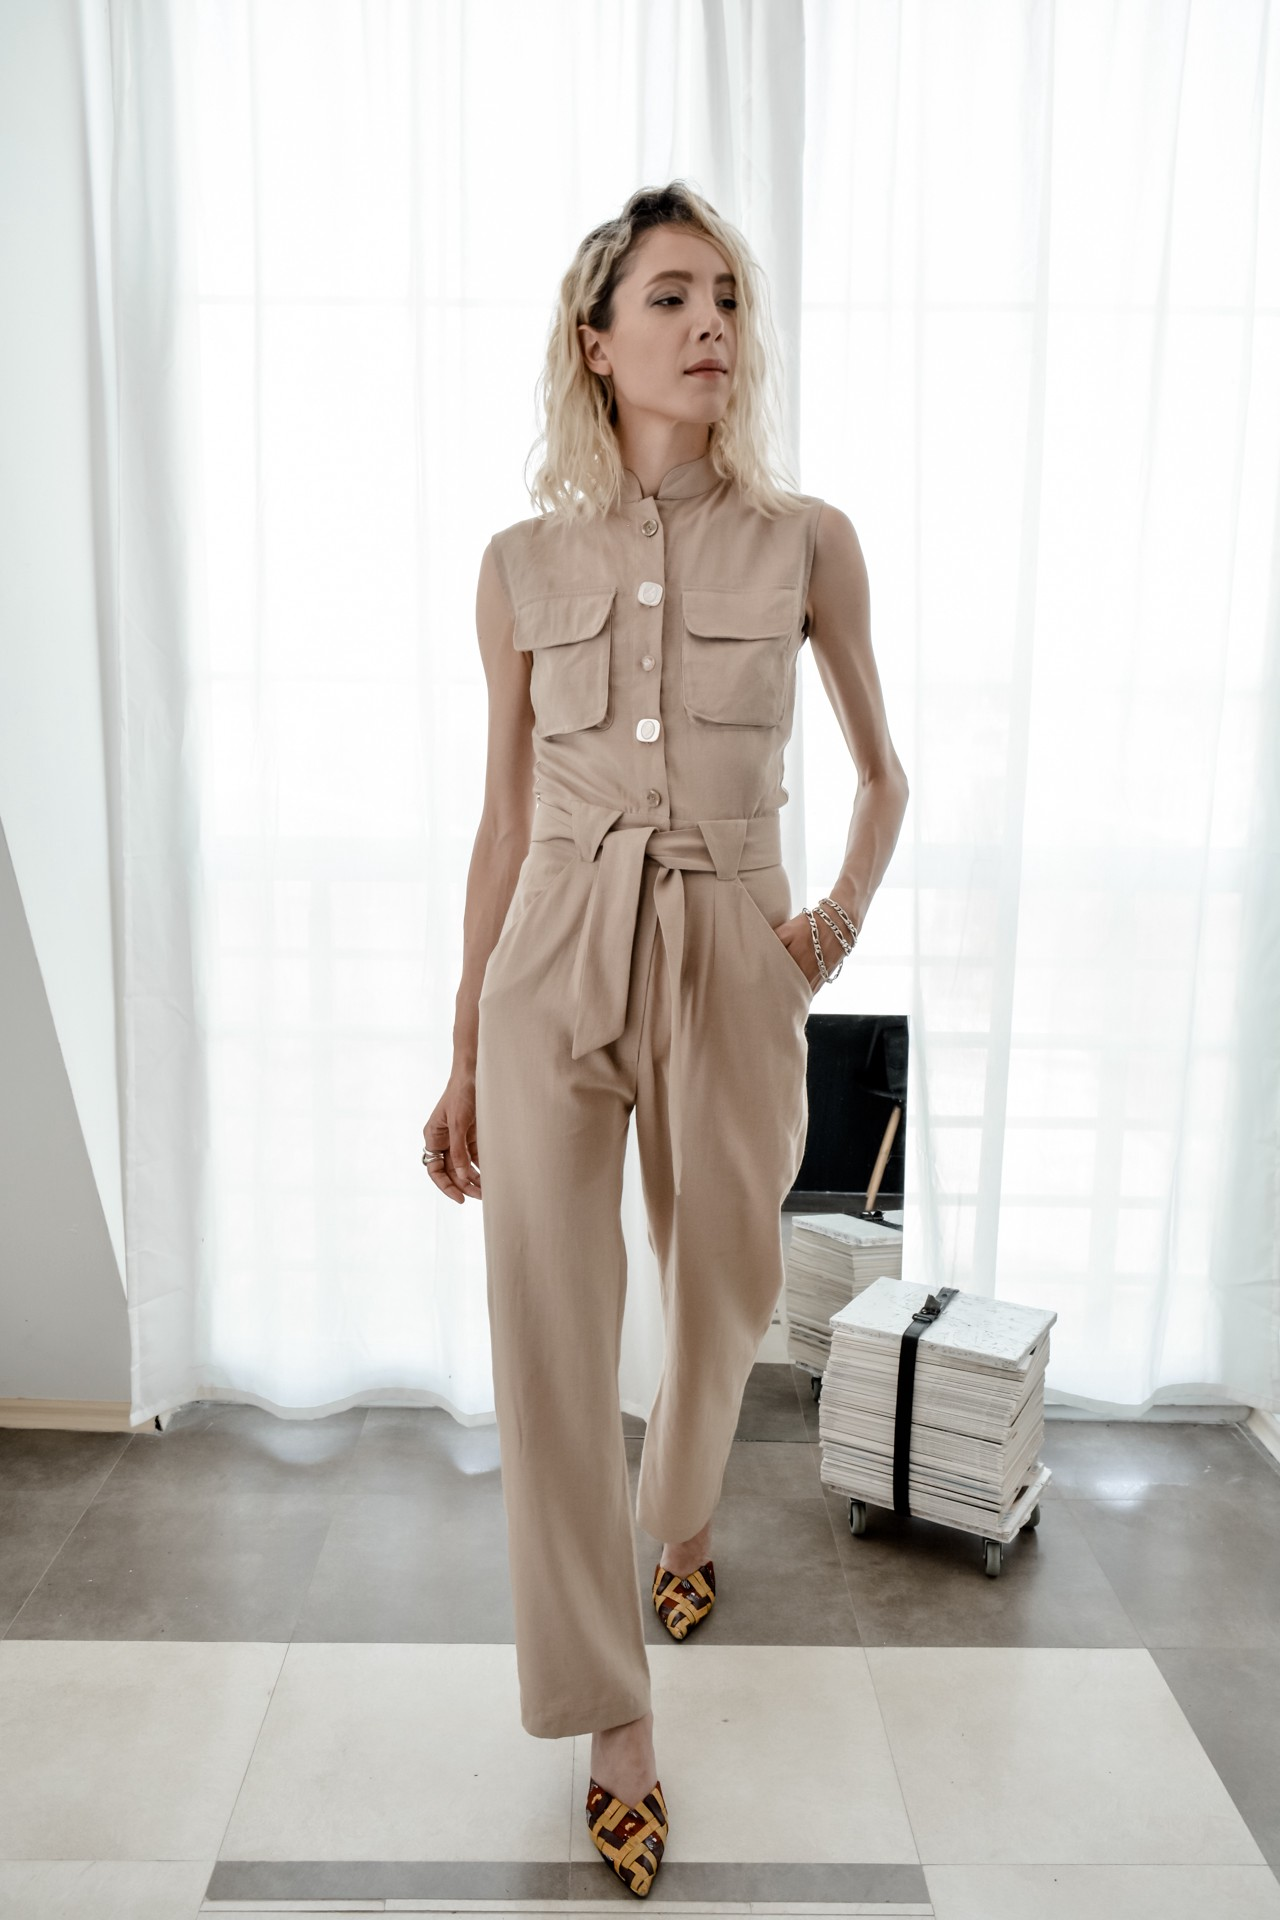 The Penta Jumpsuit by Bastet Noir made of deadstock linen